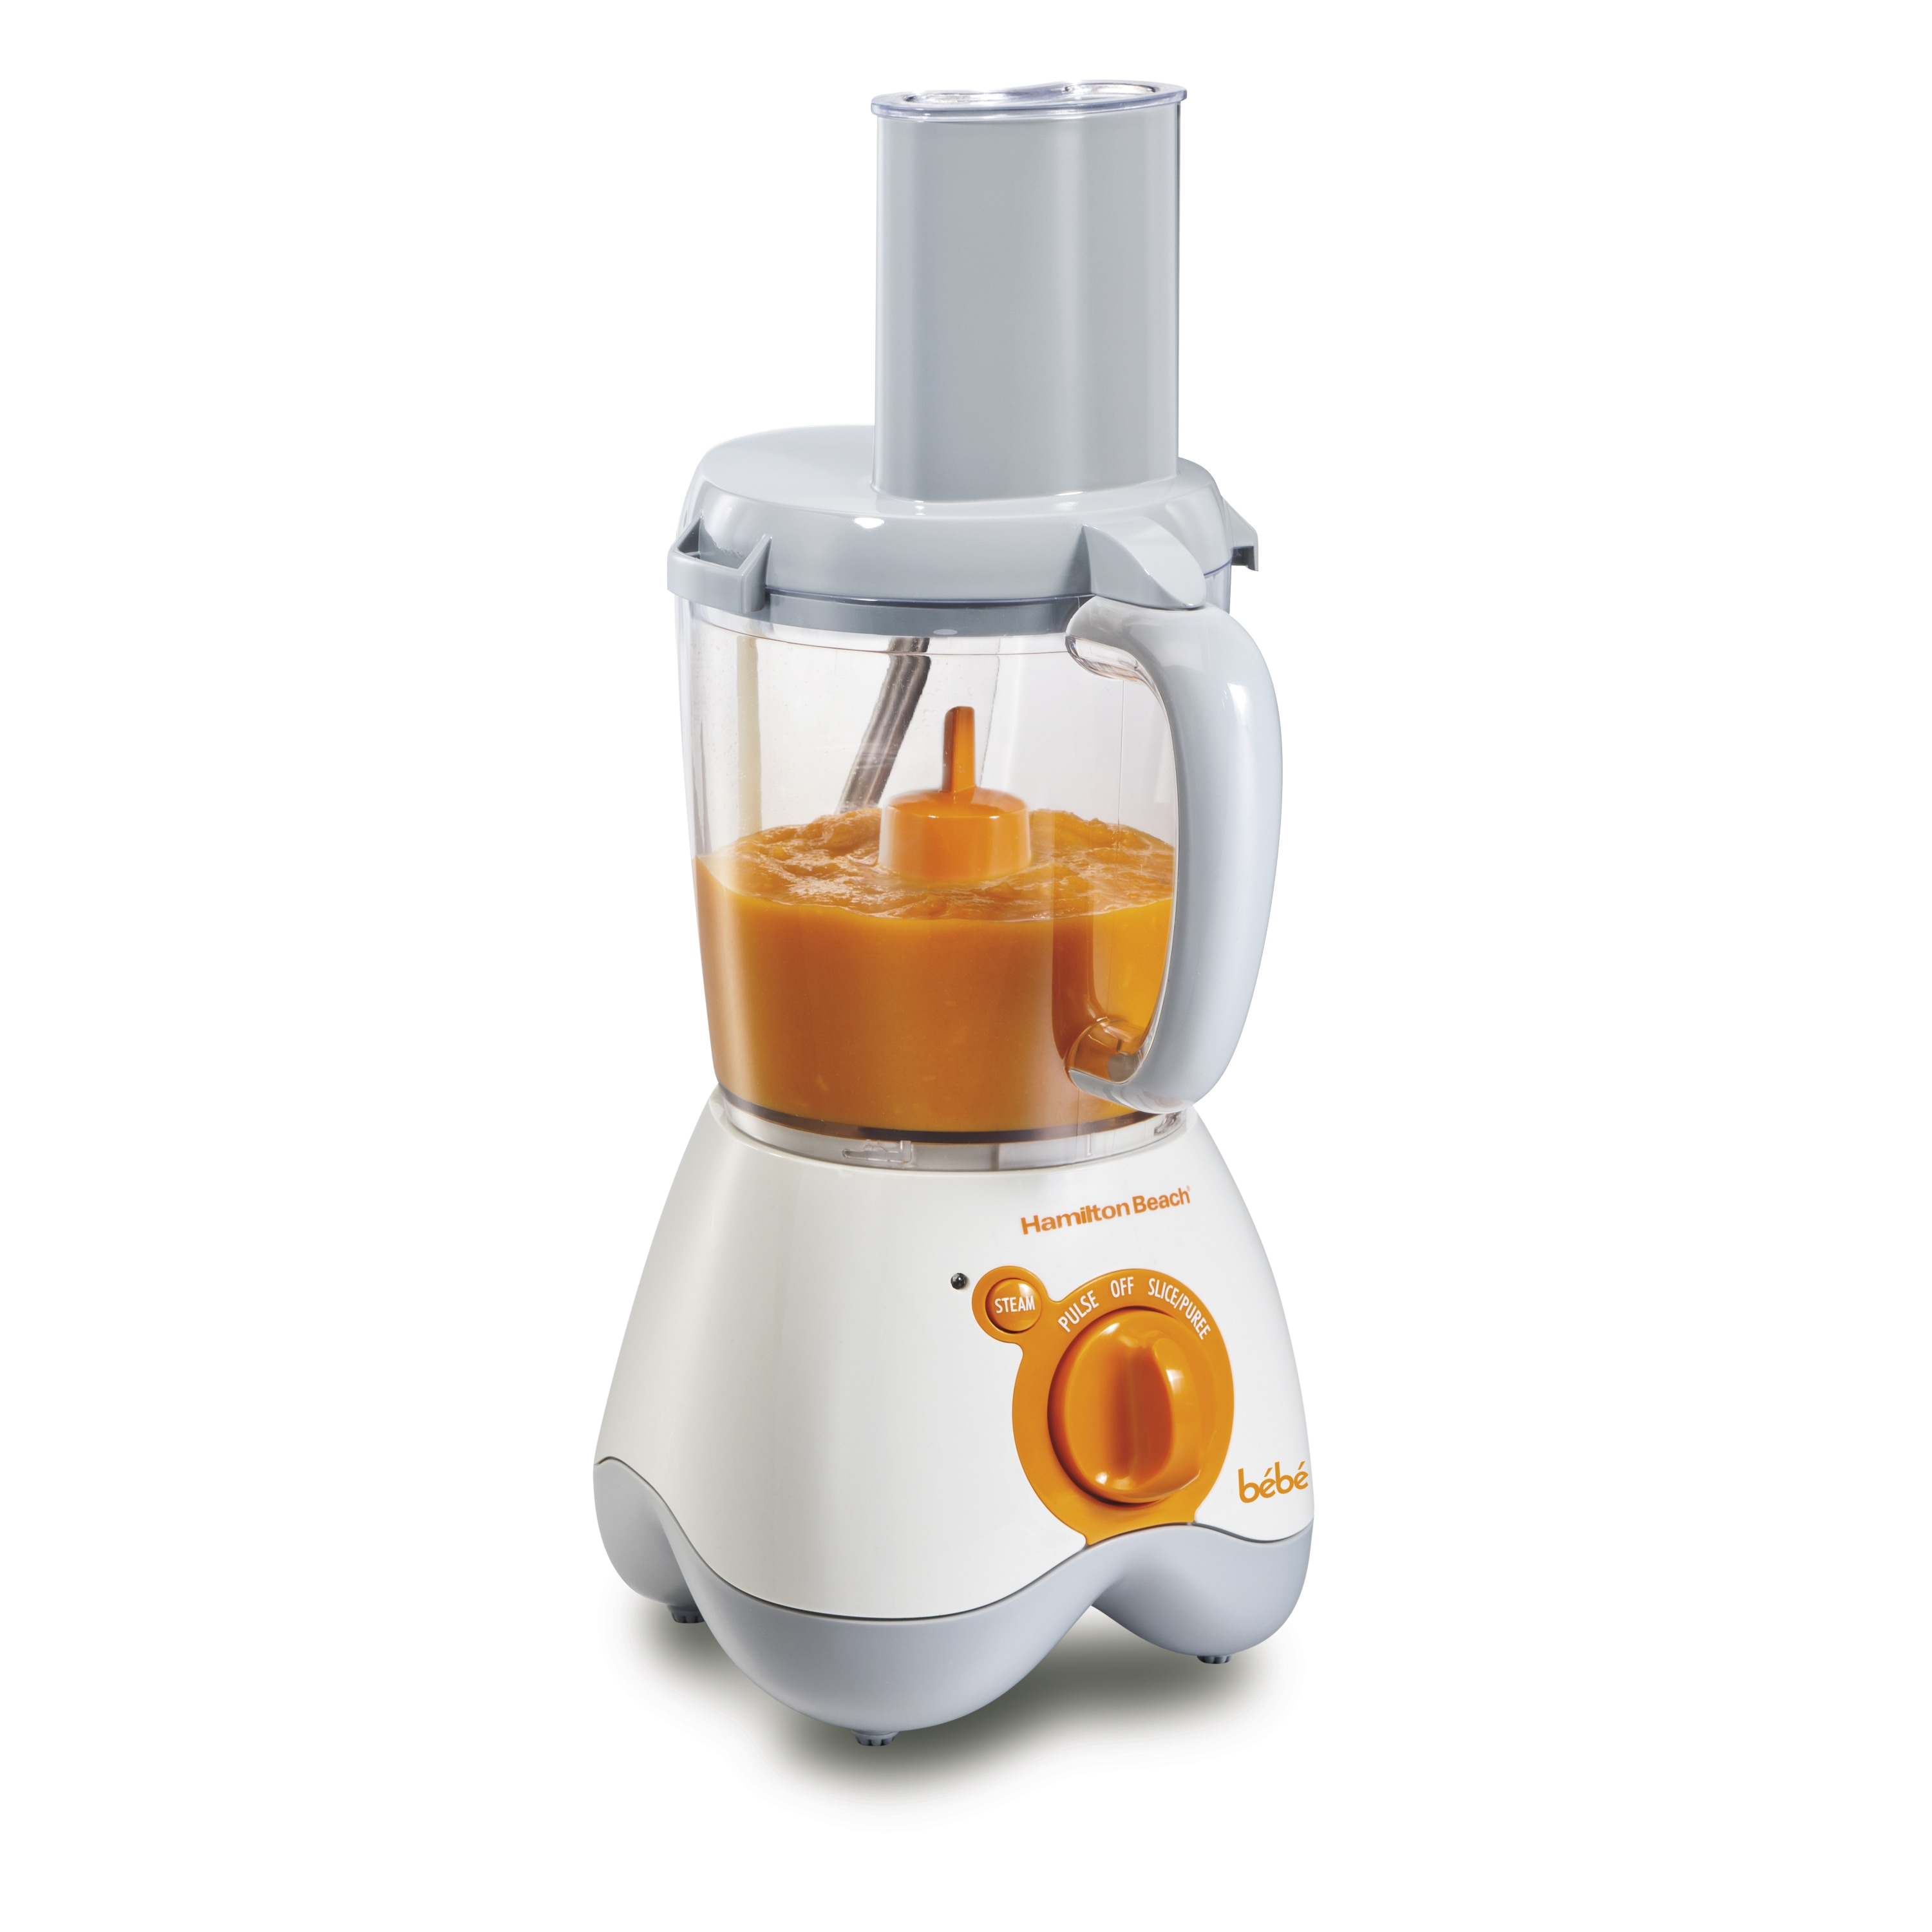 Hamilton Beach HamiltonBeach Bebe 5 Cup Baby Food Maker (...